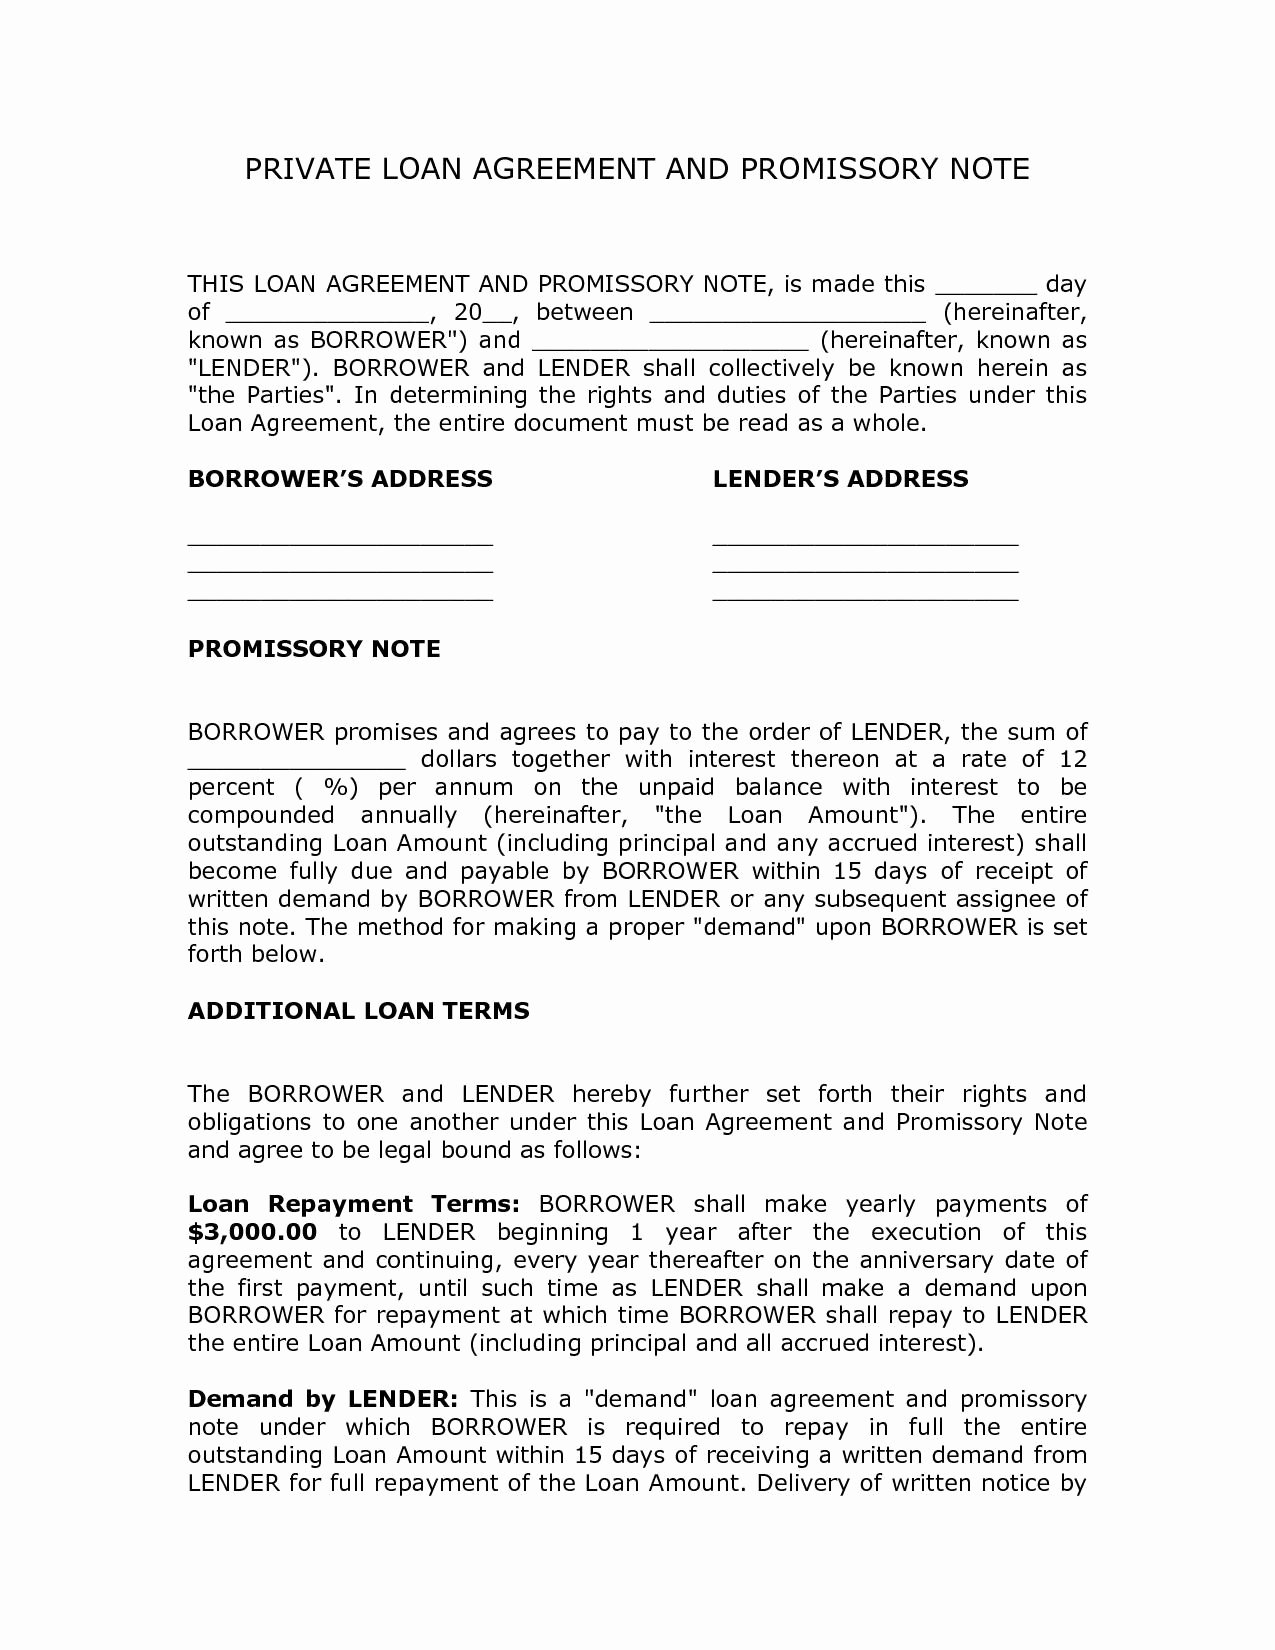 Loan Contract and Agreement Template Examples Vatansun